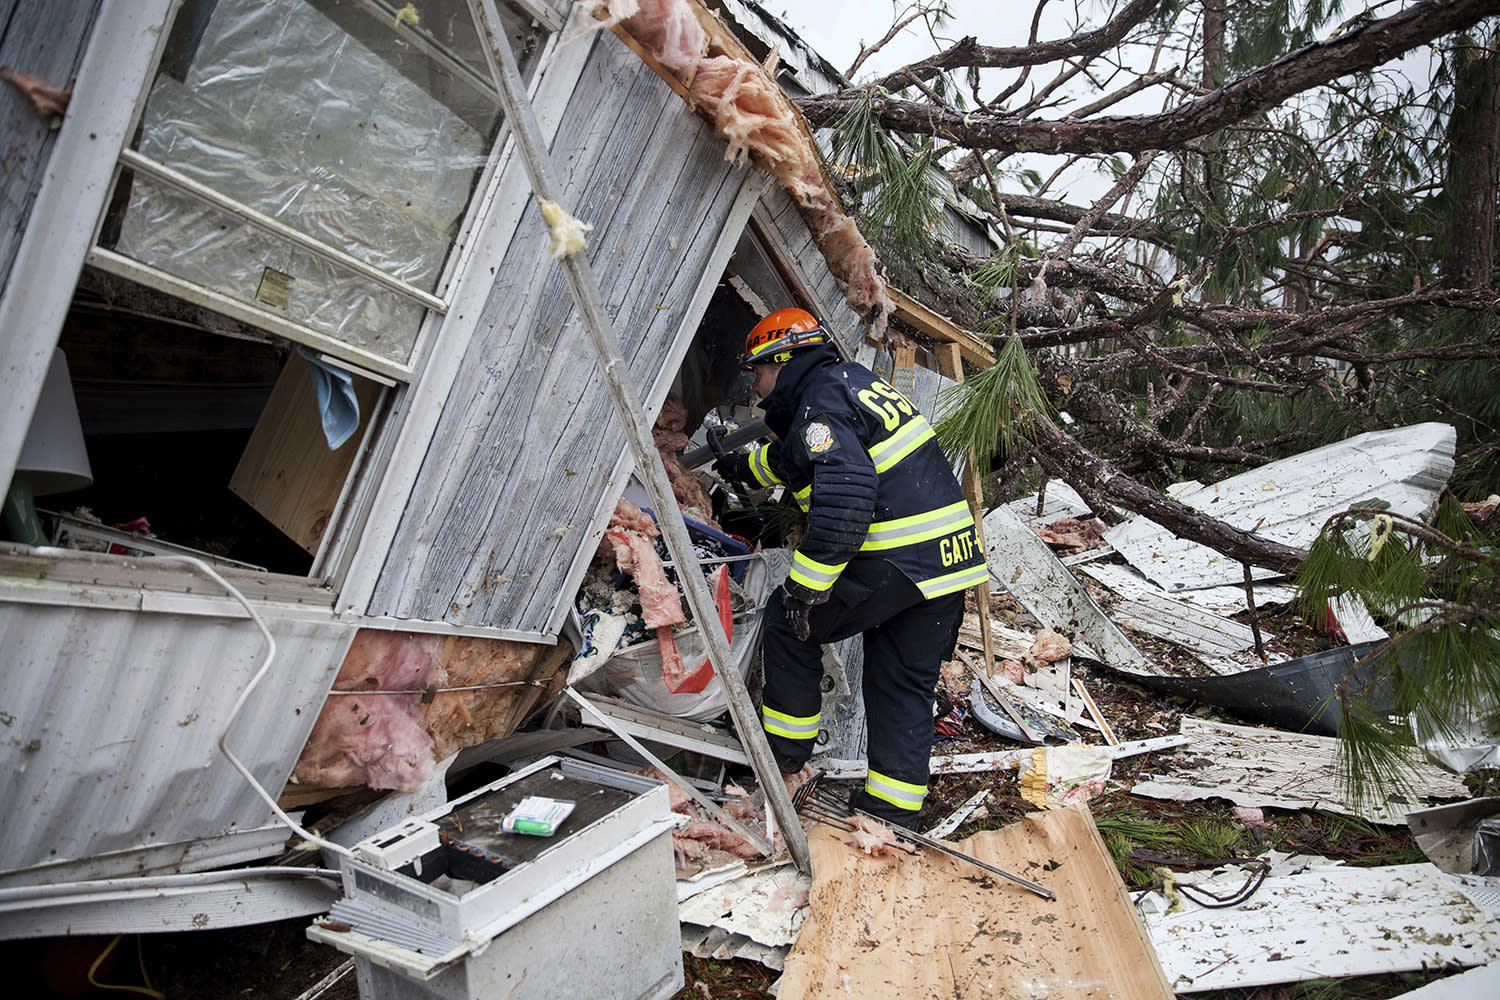 <p>A rescue worker enters a hole in the back of a mobile home Monday, Jan. 23, 2017, in Big Pine Estates that was damaged by a tornado, in Albany, Ga. (AP Photo/Branden Camp) </p>